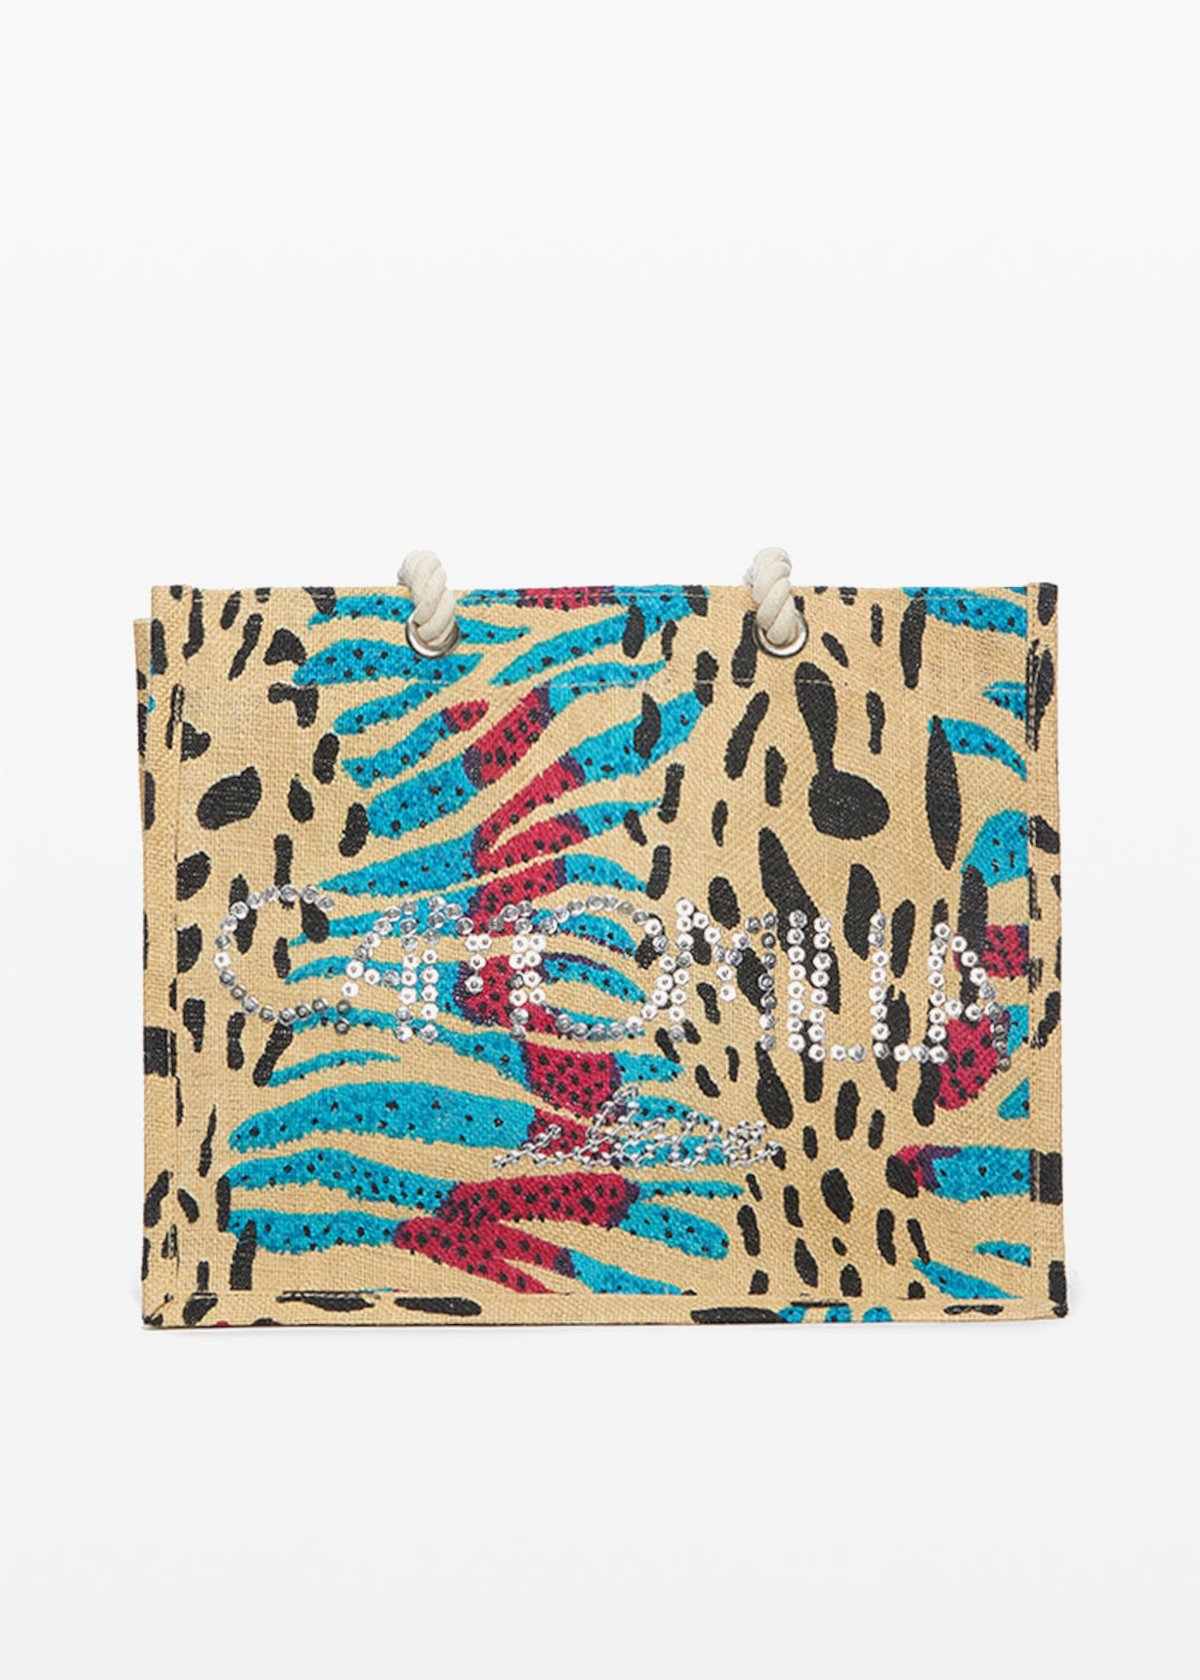 Blackie animalier print jute bag with Camomilla logo i love in sequins - Light Beige / Peonia Animalier - Woman